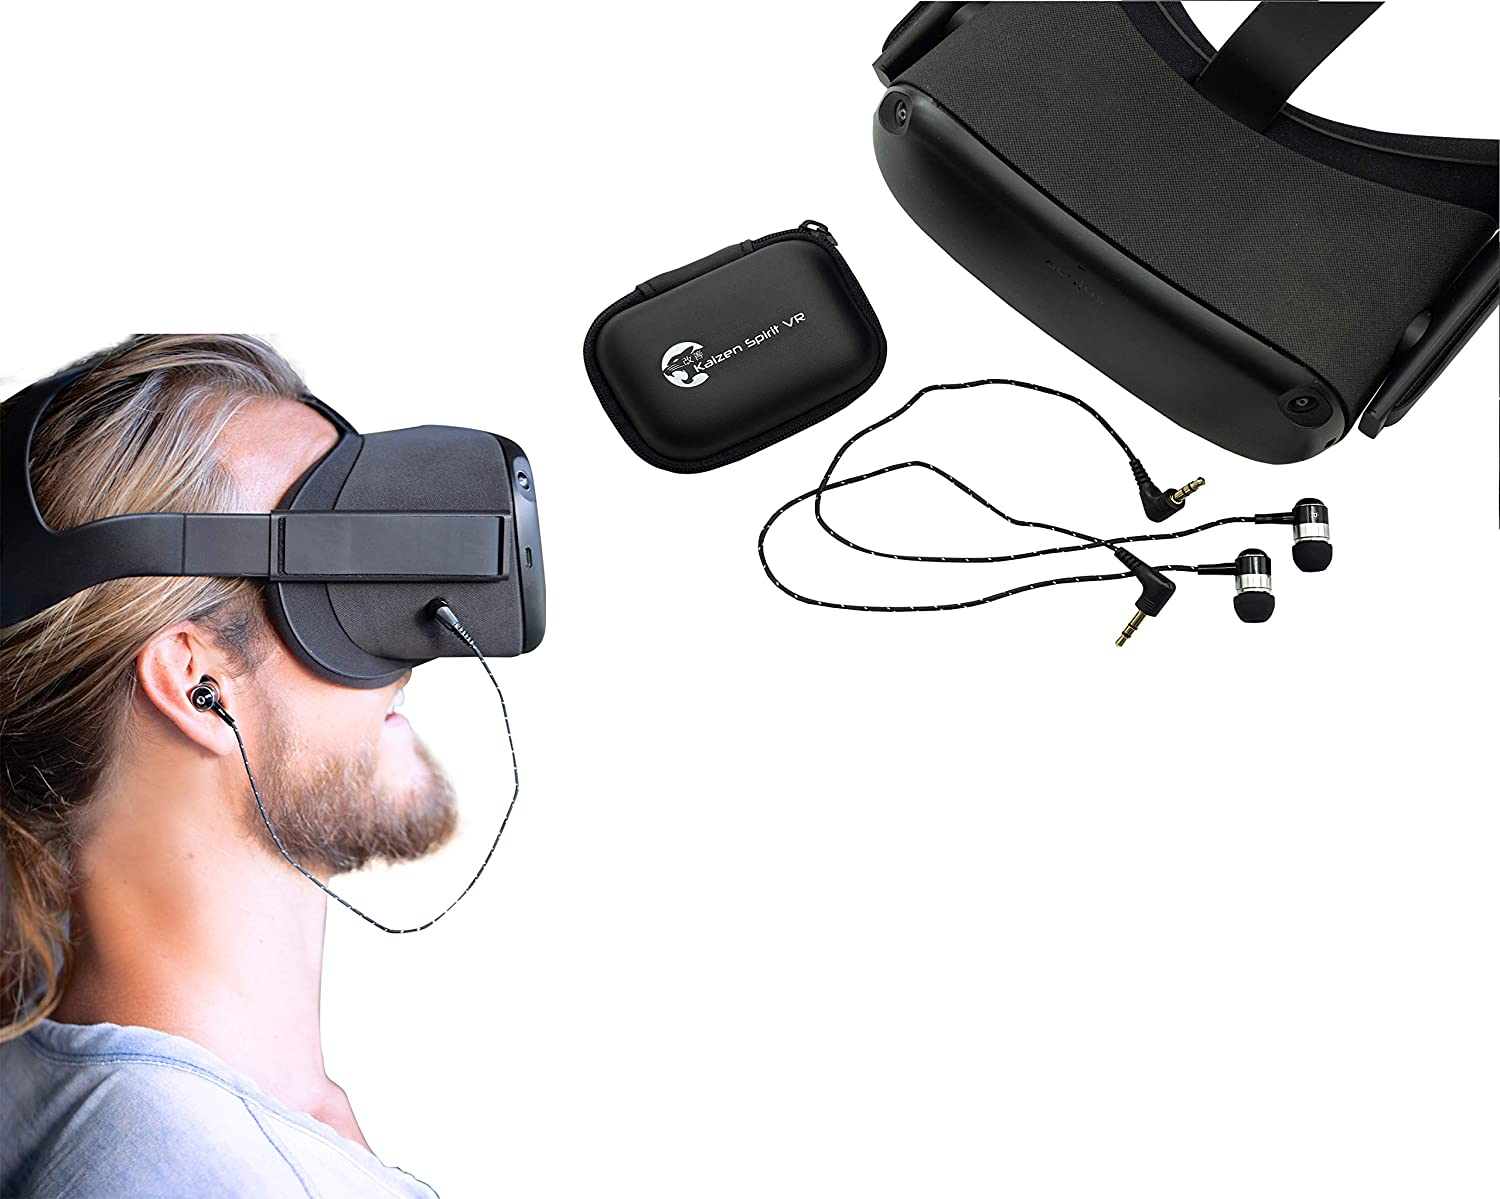 Kaizen Spirit VR Headphones | Compatible with Oculus Quest | Designed as Oculus Quest Headphones, Oculus Quest Earbuds | Oculus Quest Accessories